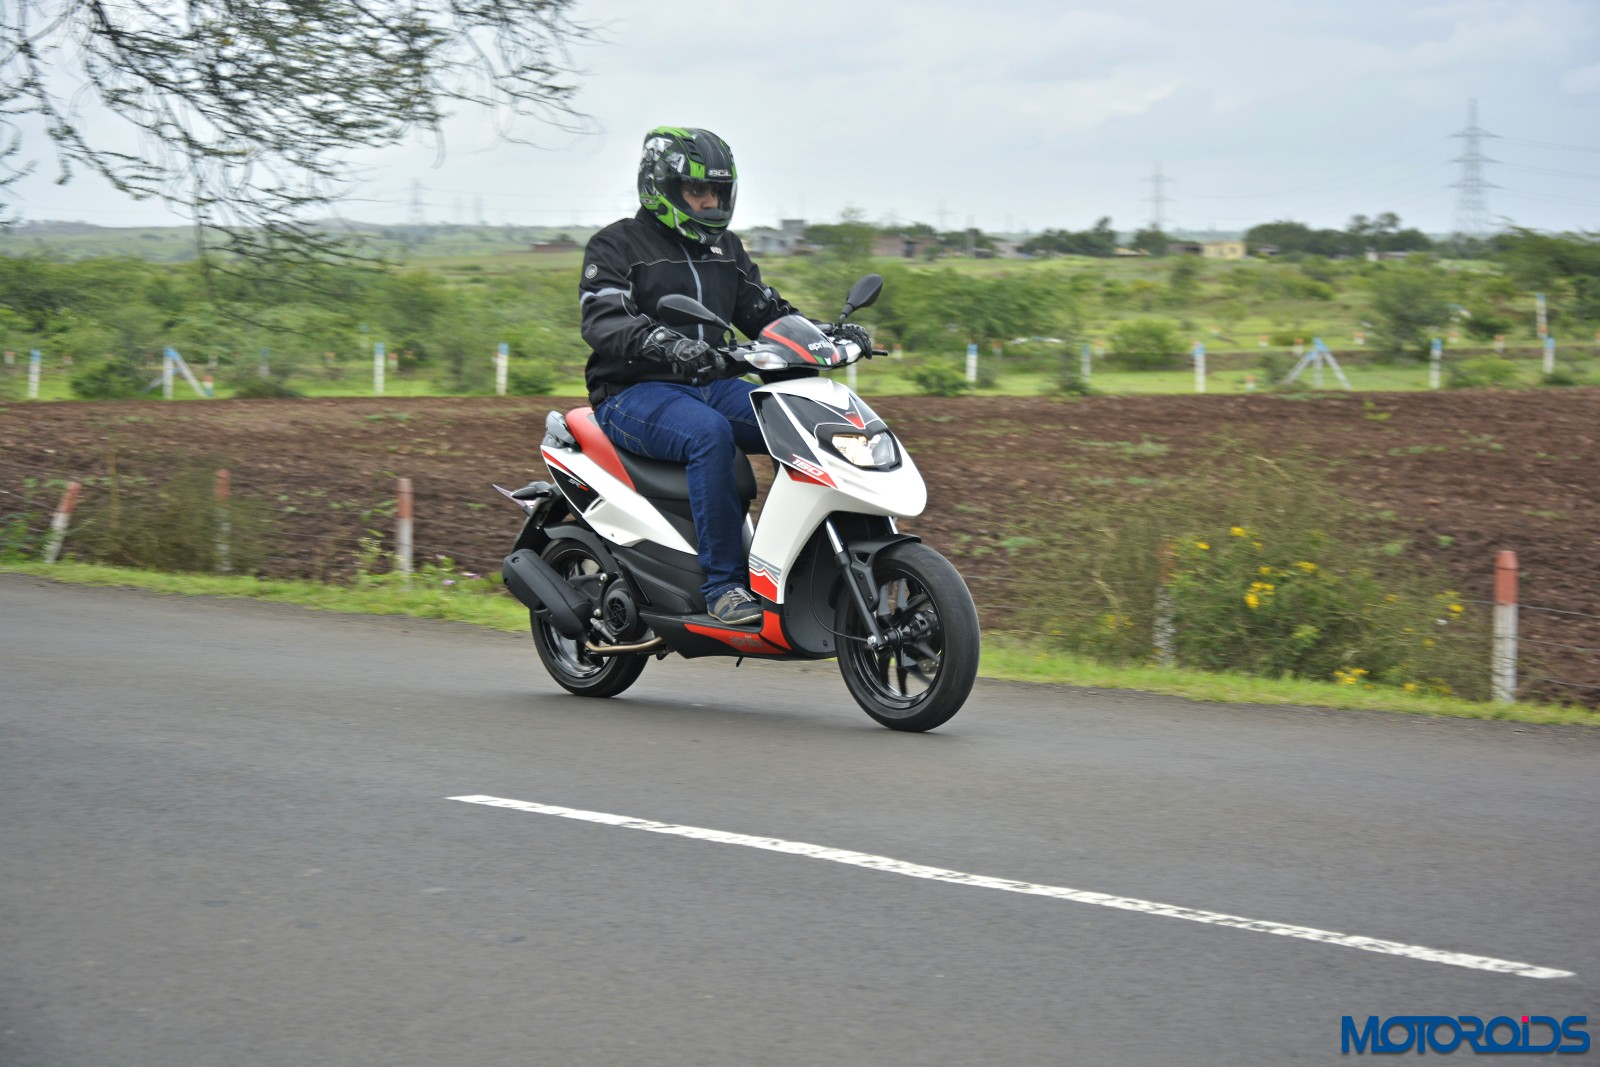 Aprilia SR 150 Review - Action Shots (6)